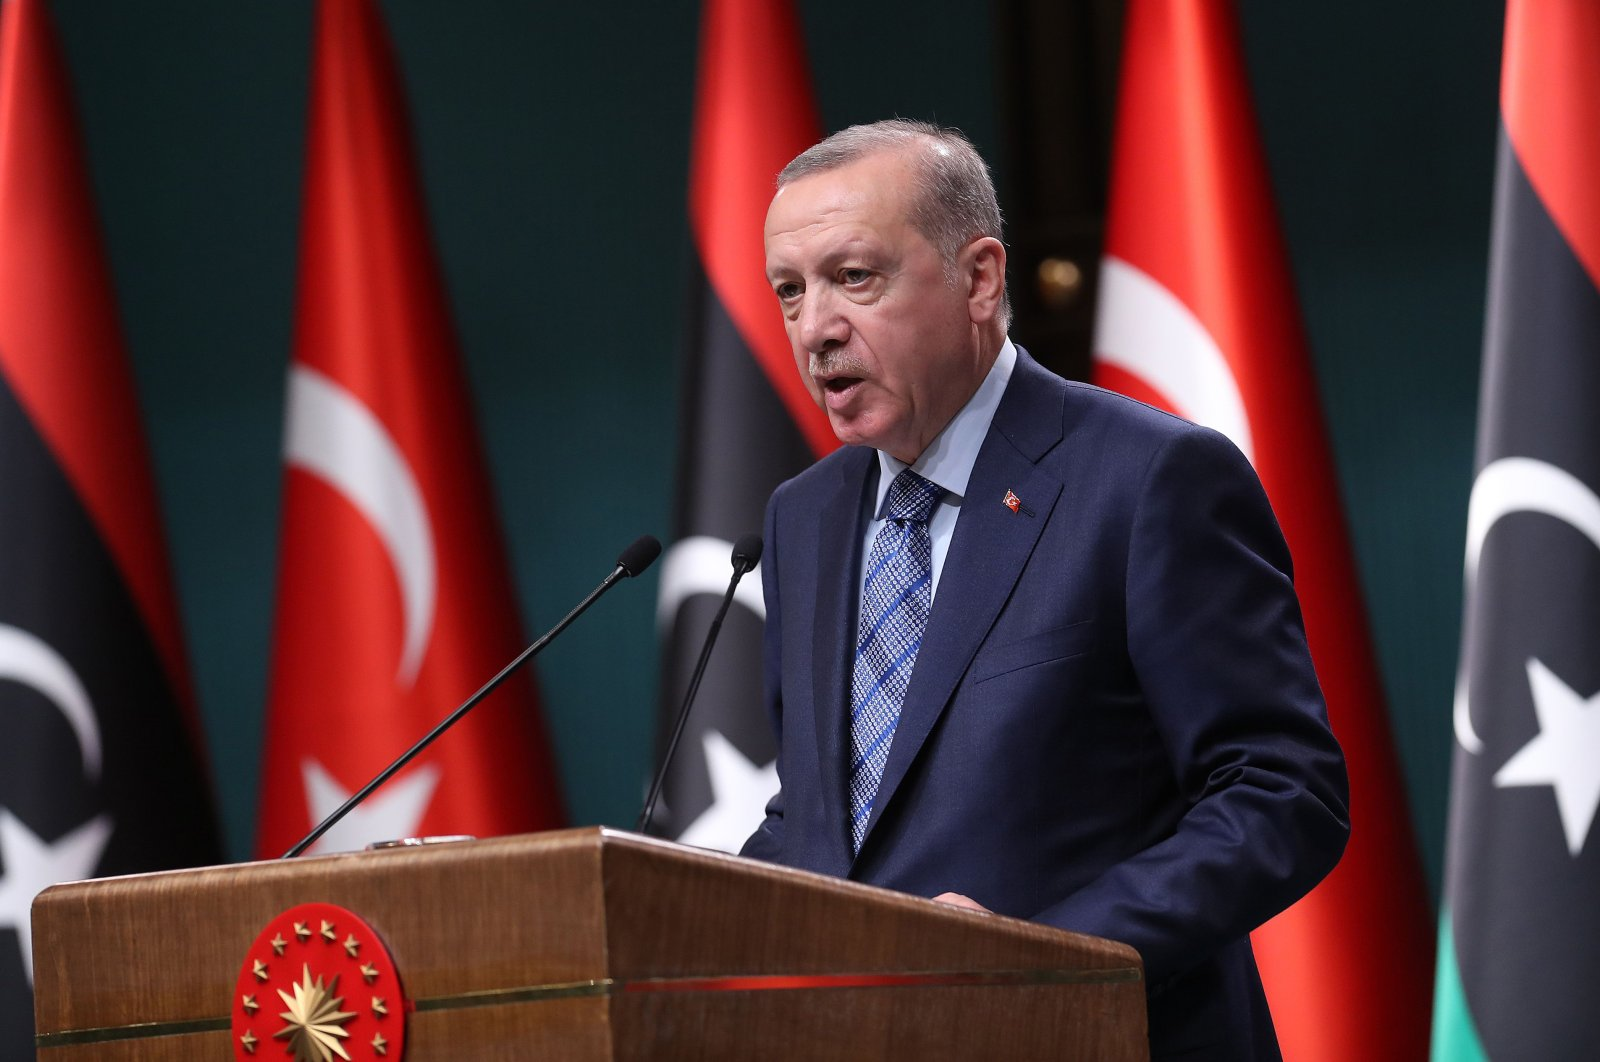 President Recep Tayyip Erdoğan holds a joint news conference with Libyan Prime Minister Fayez al-Sarraj at the Presidential Complex in Ankara, Turkey, June 4, 2020. (AFP Photo)